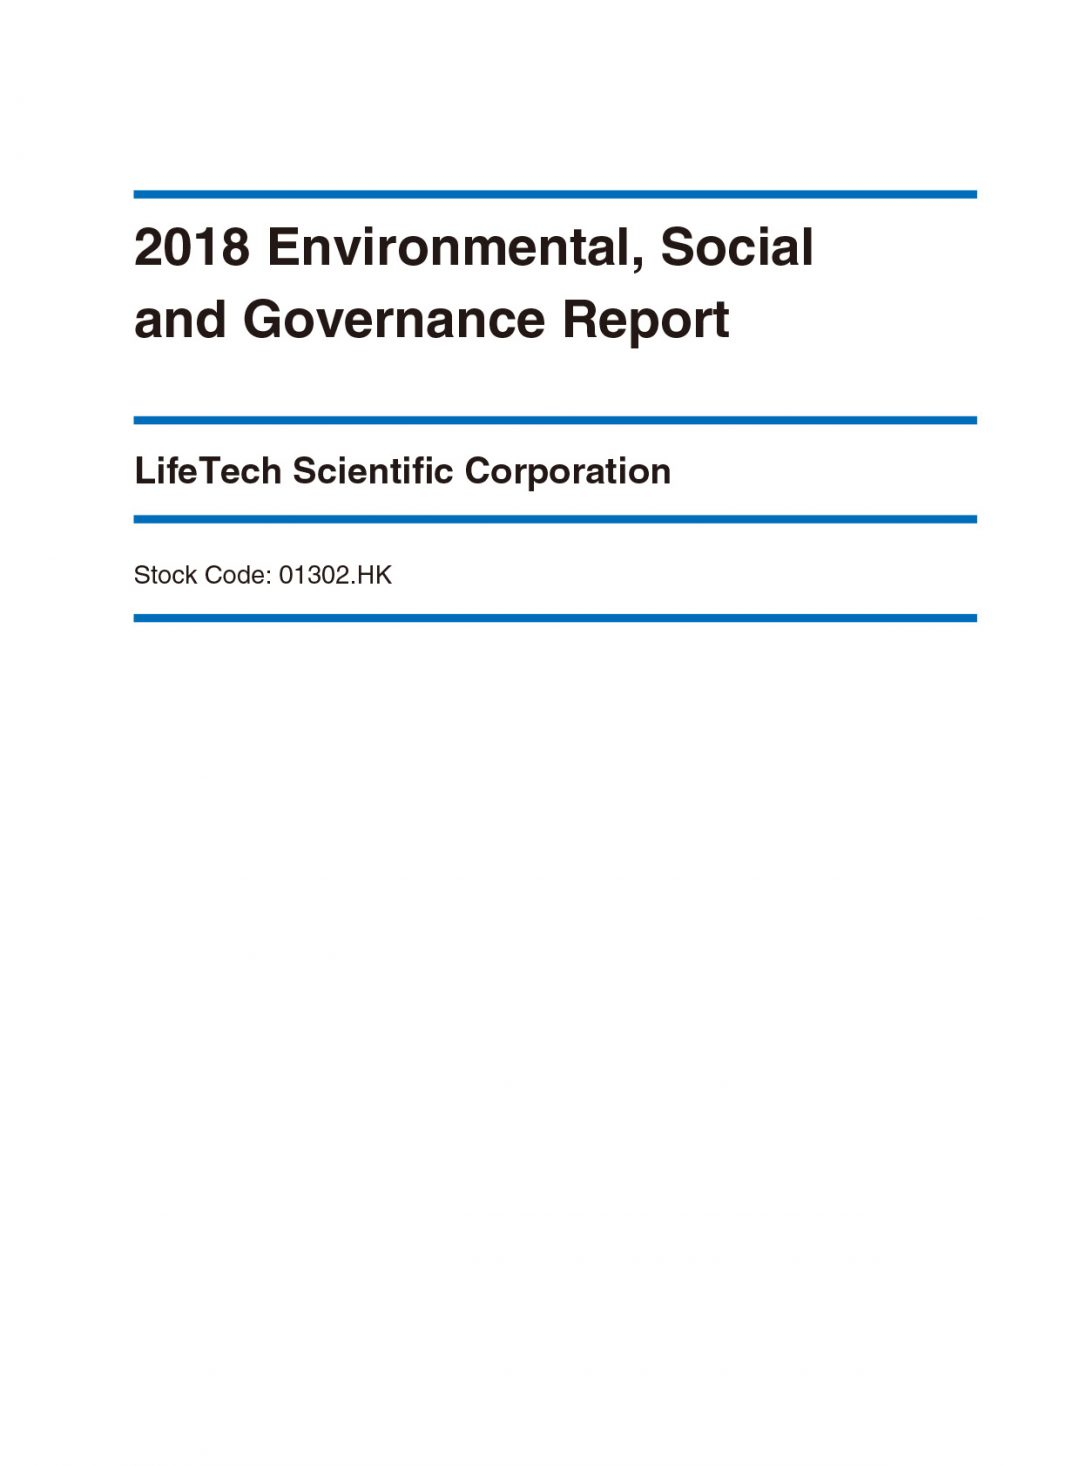 LifeTech Scientific Corporation ESG